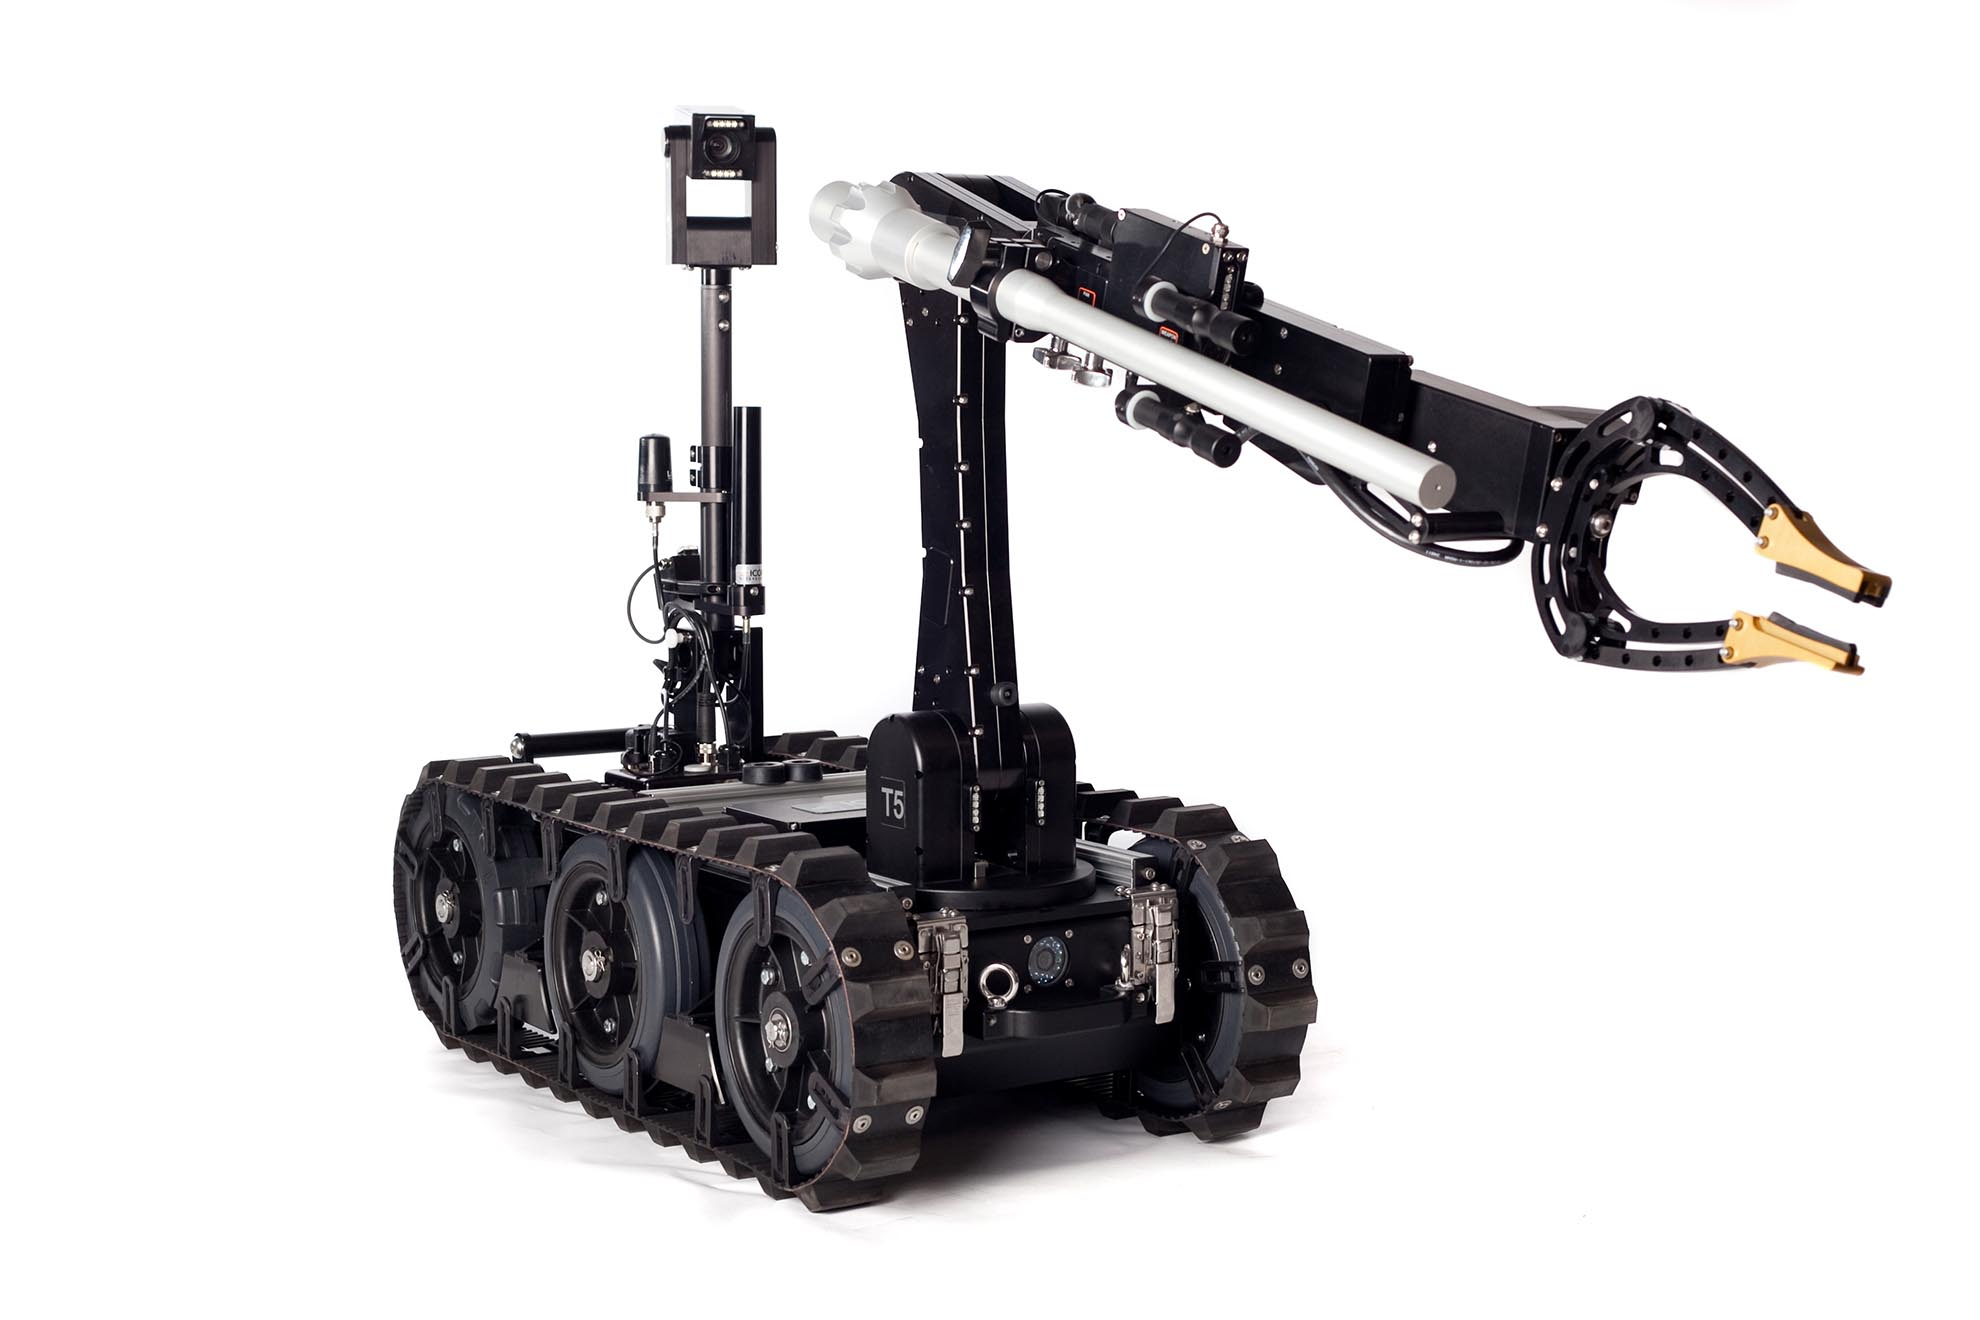 caliber-t5-swat-eod-robot-copy